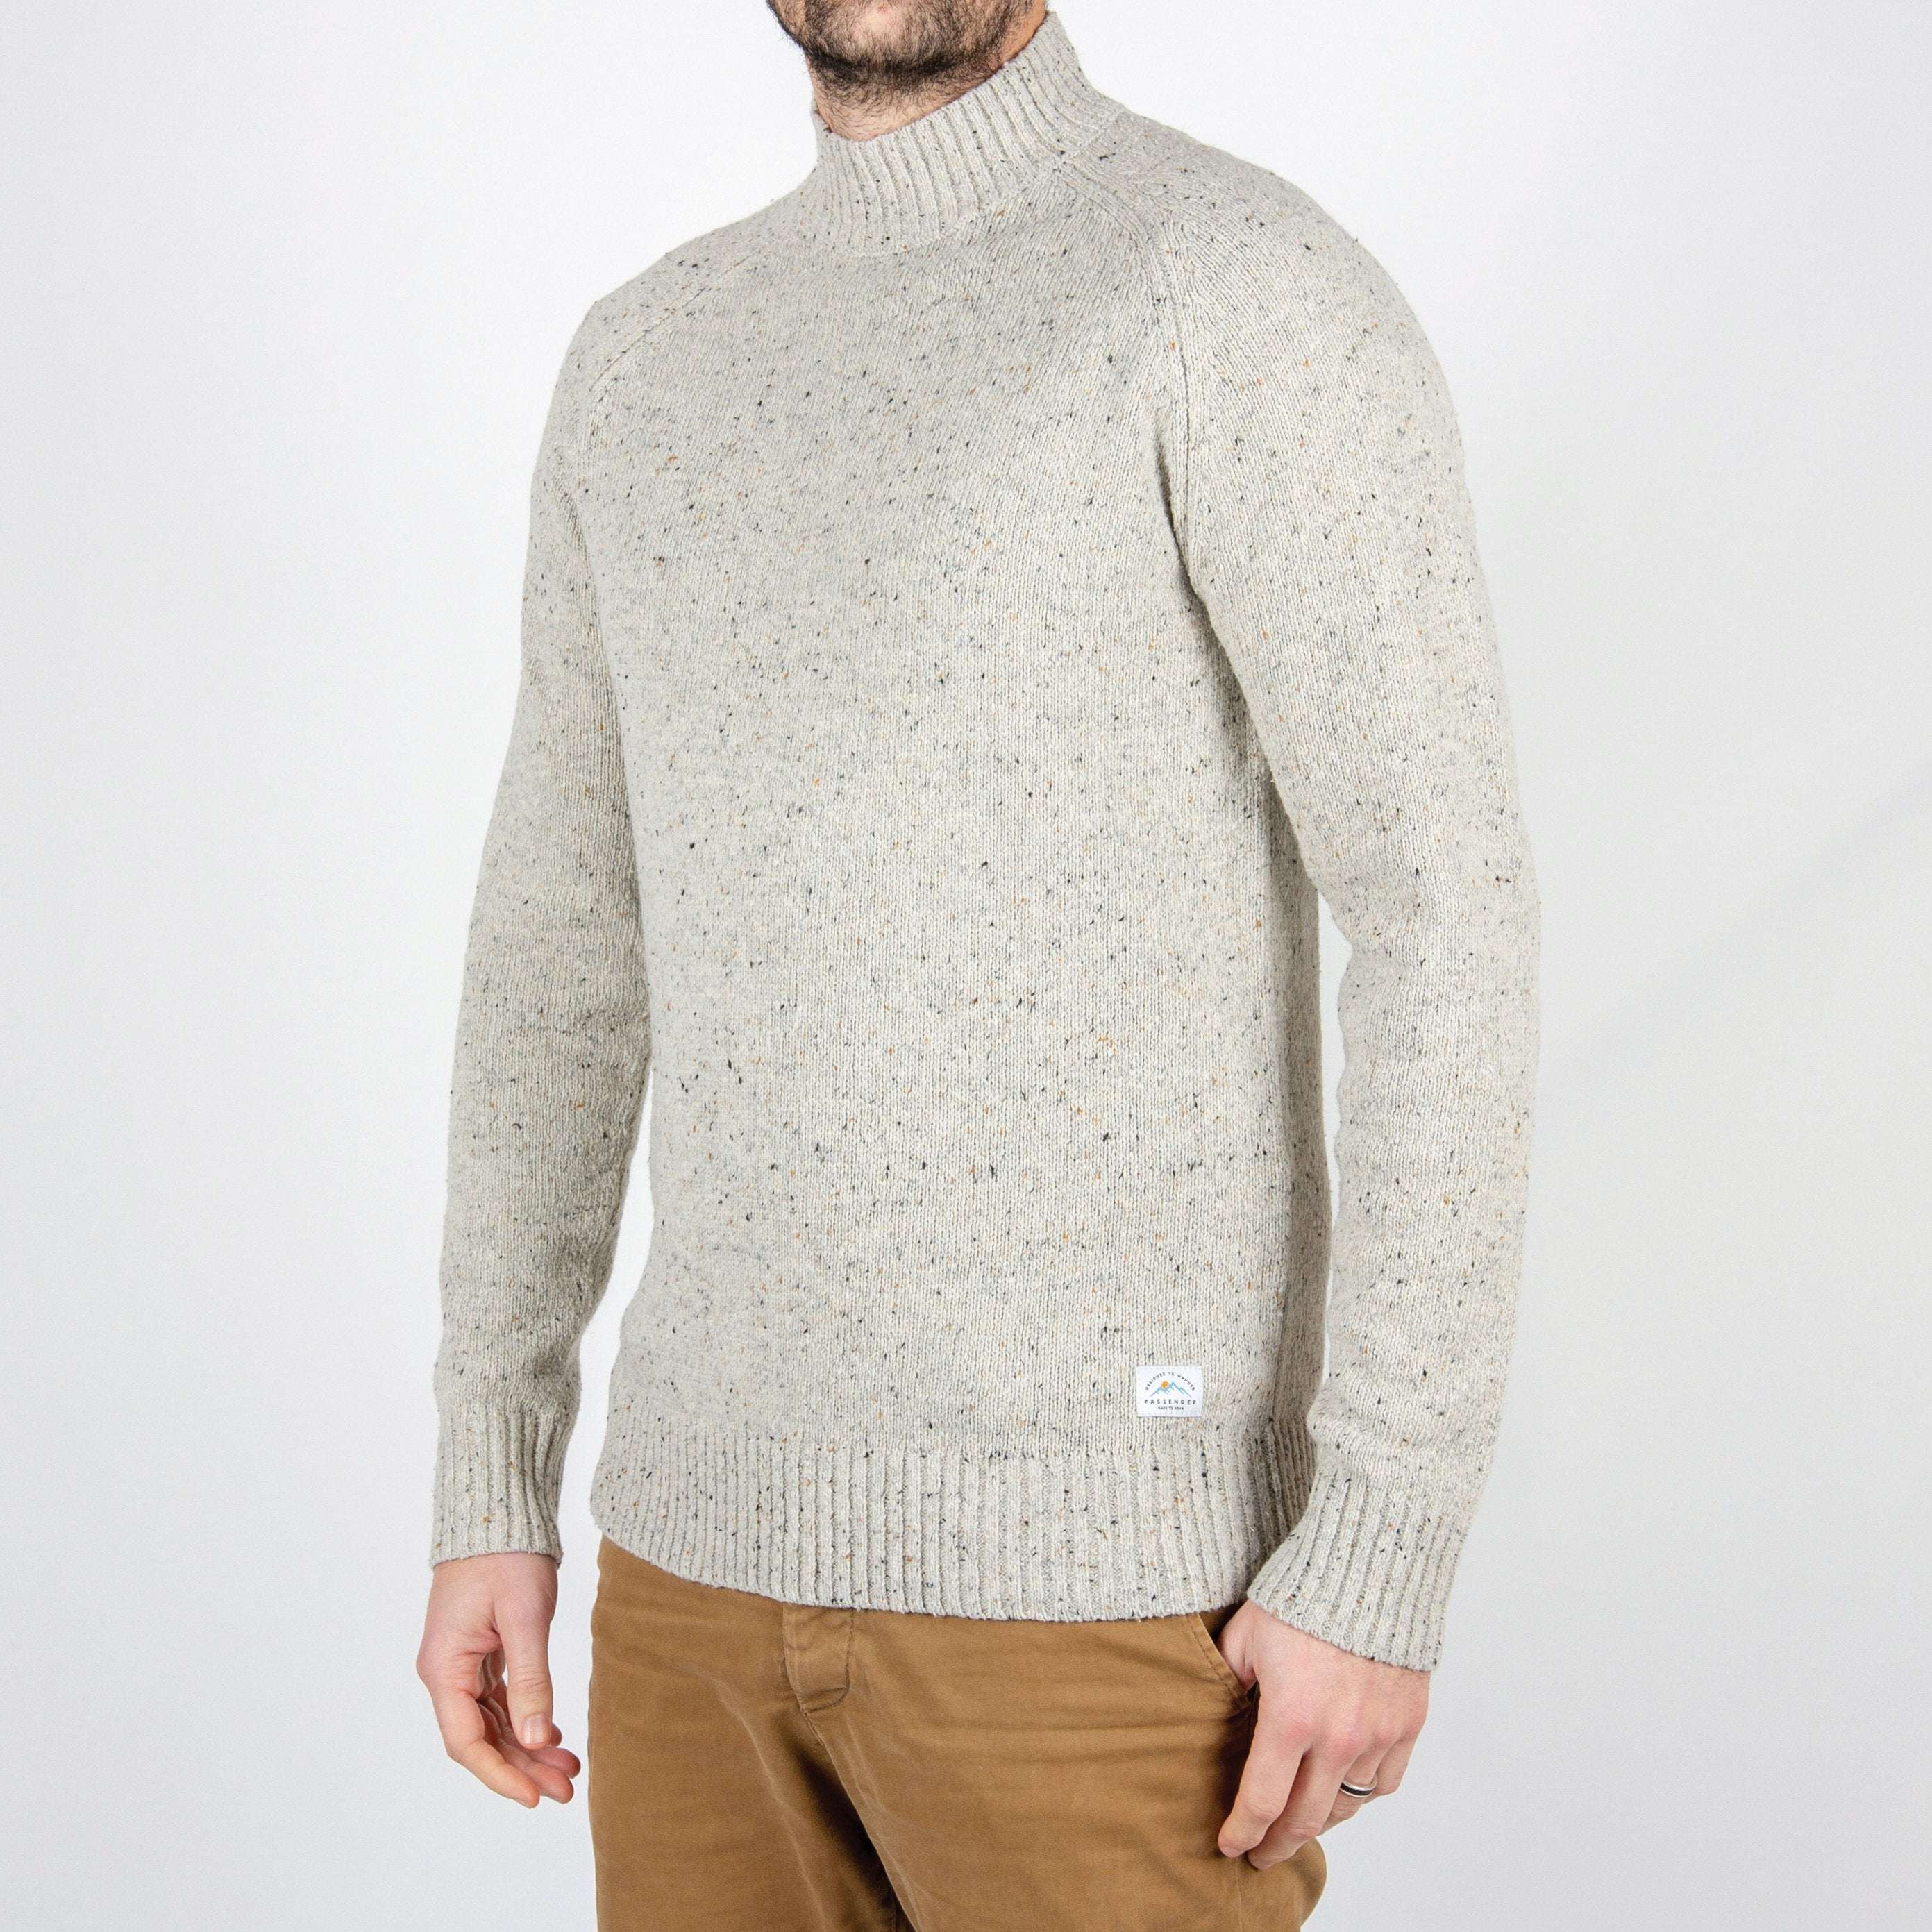 Crossing Knitted Sweater - Grey Fleck image 2